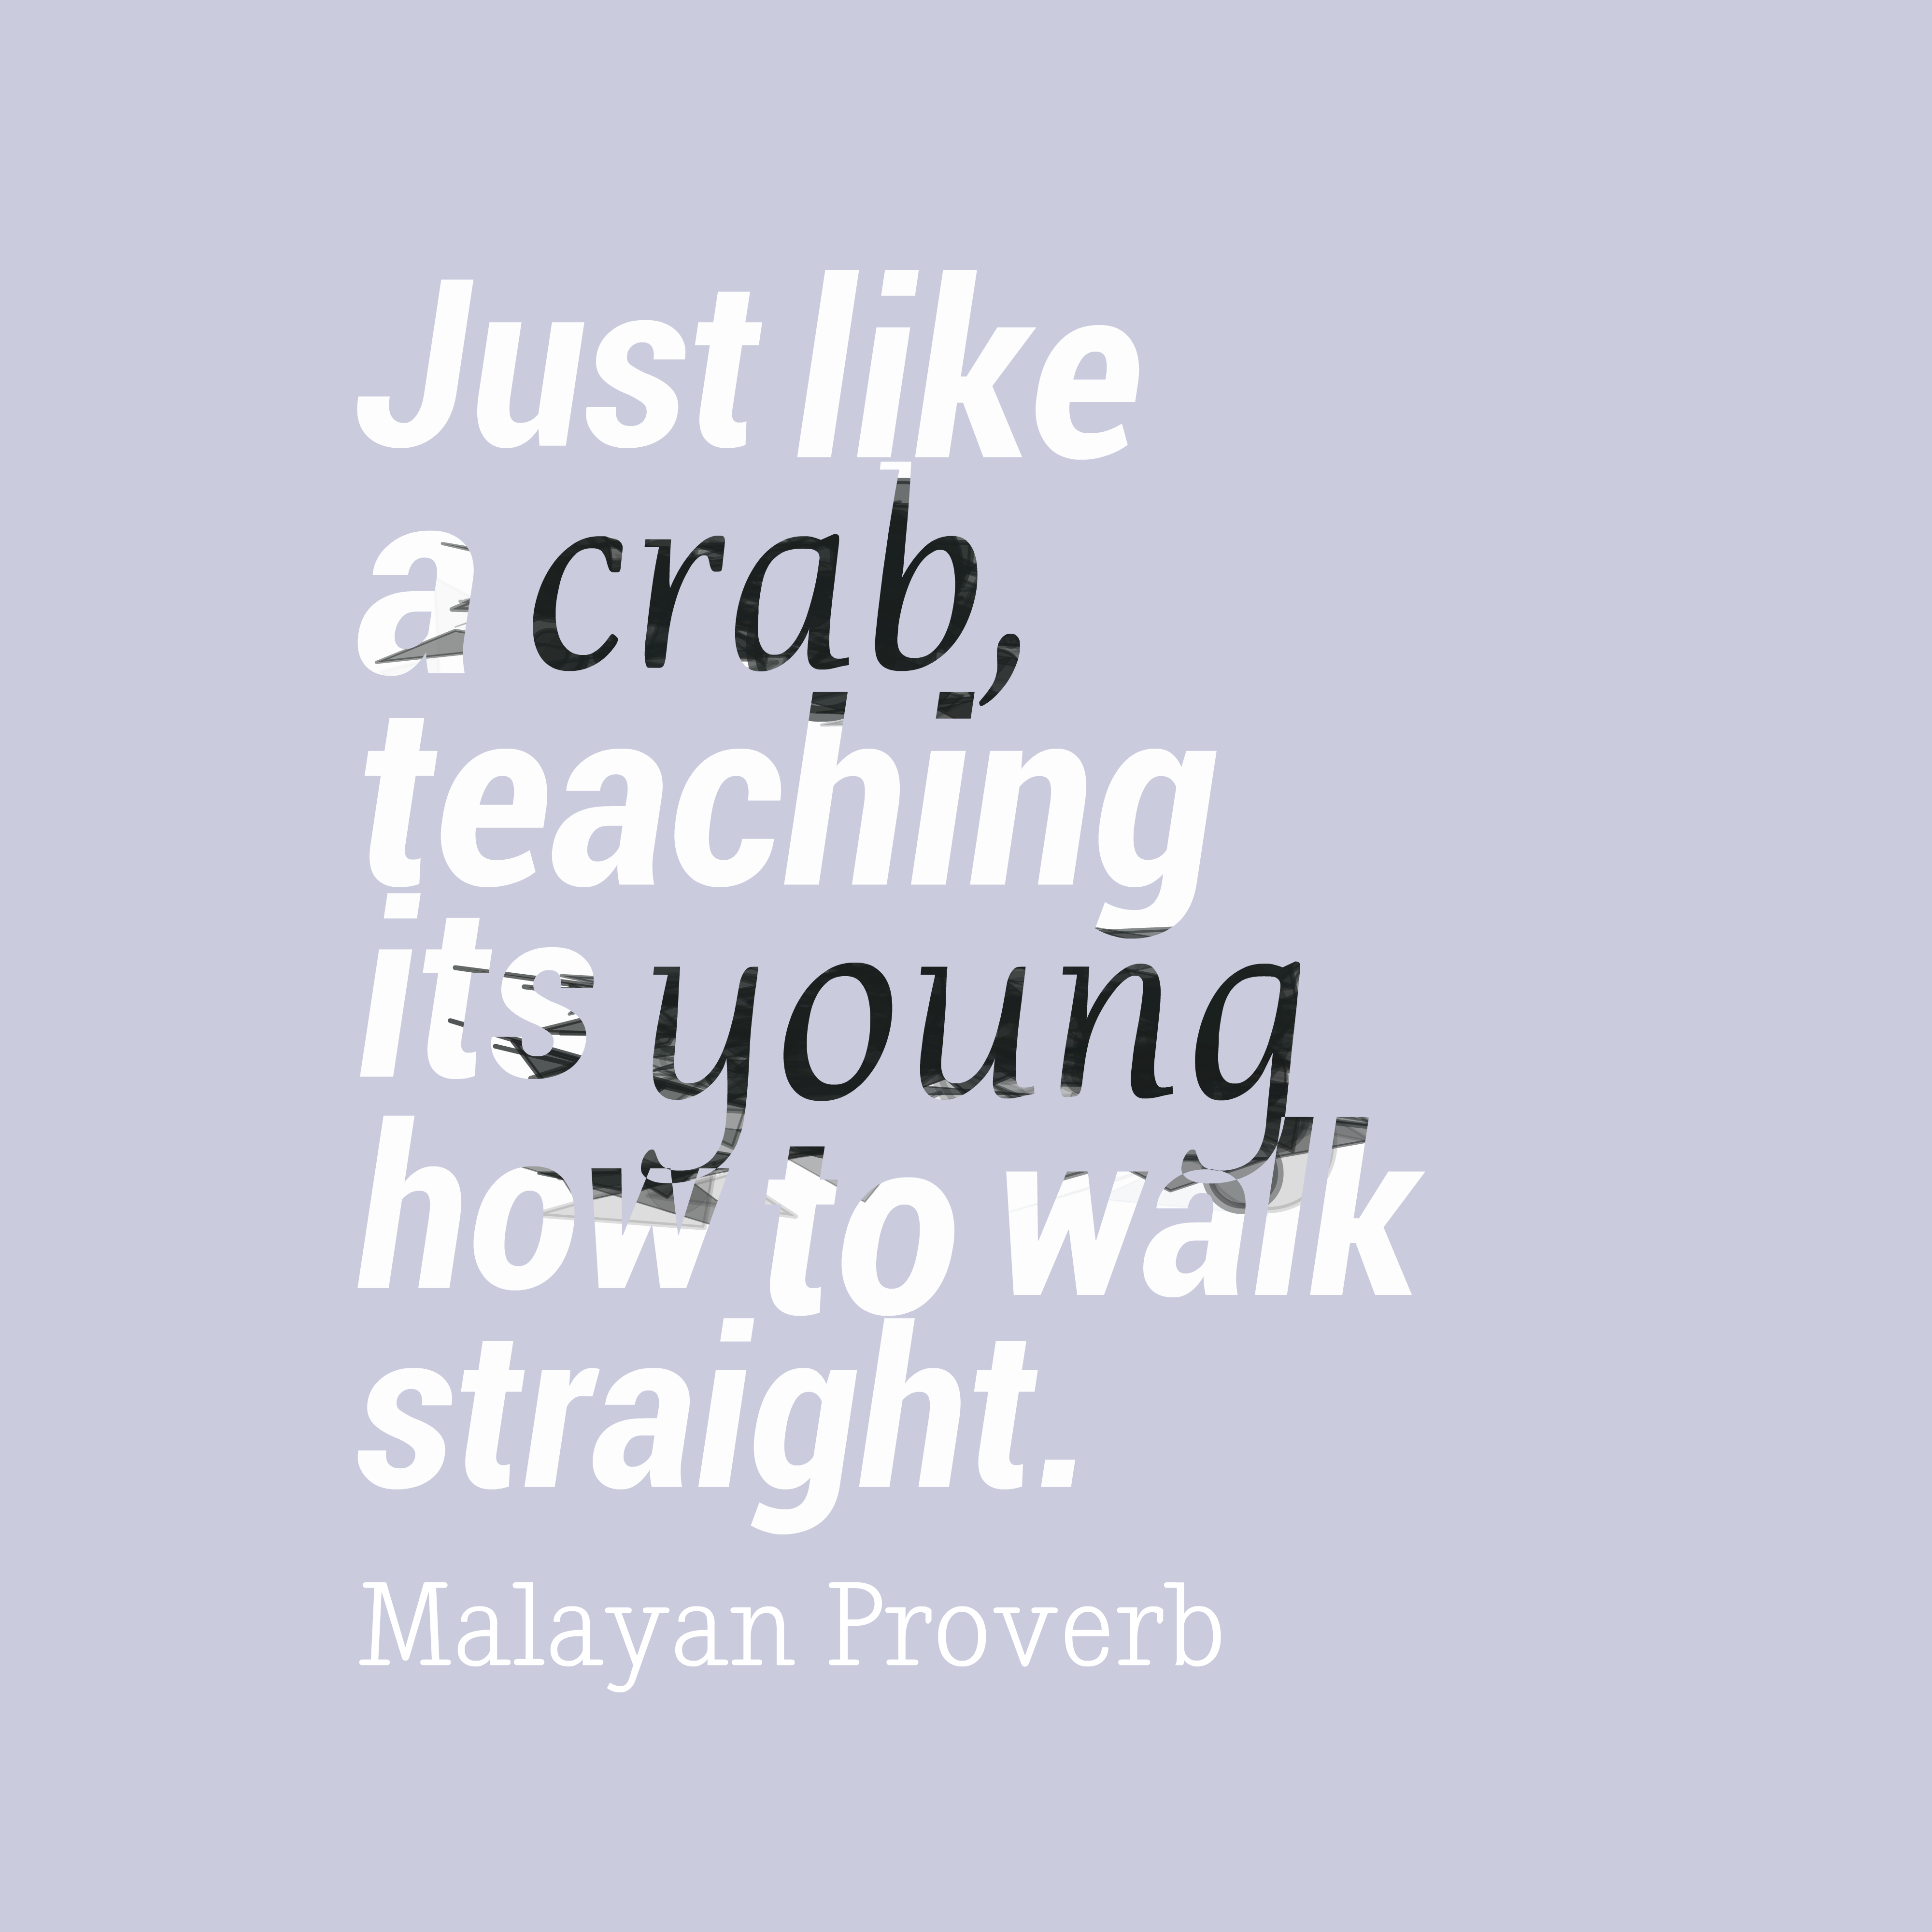 Quotes image of Just like a crab, teaching its young how to walk straight.